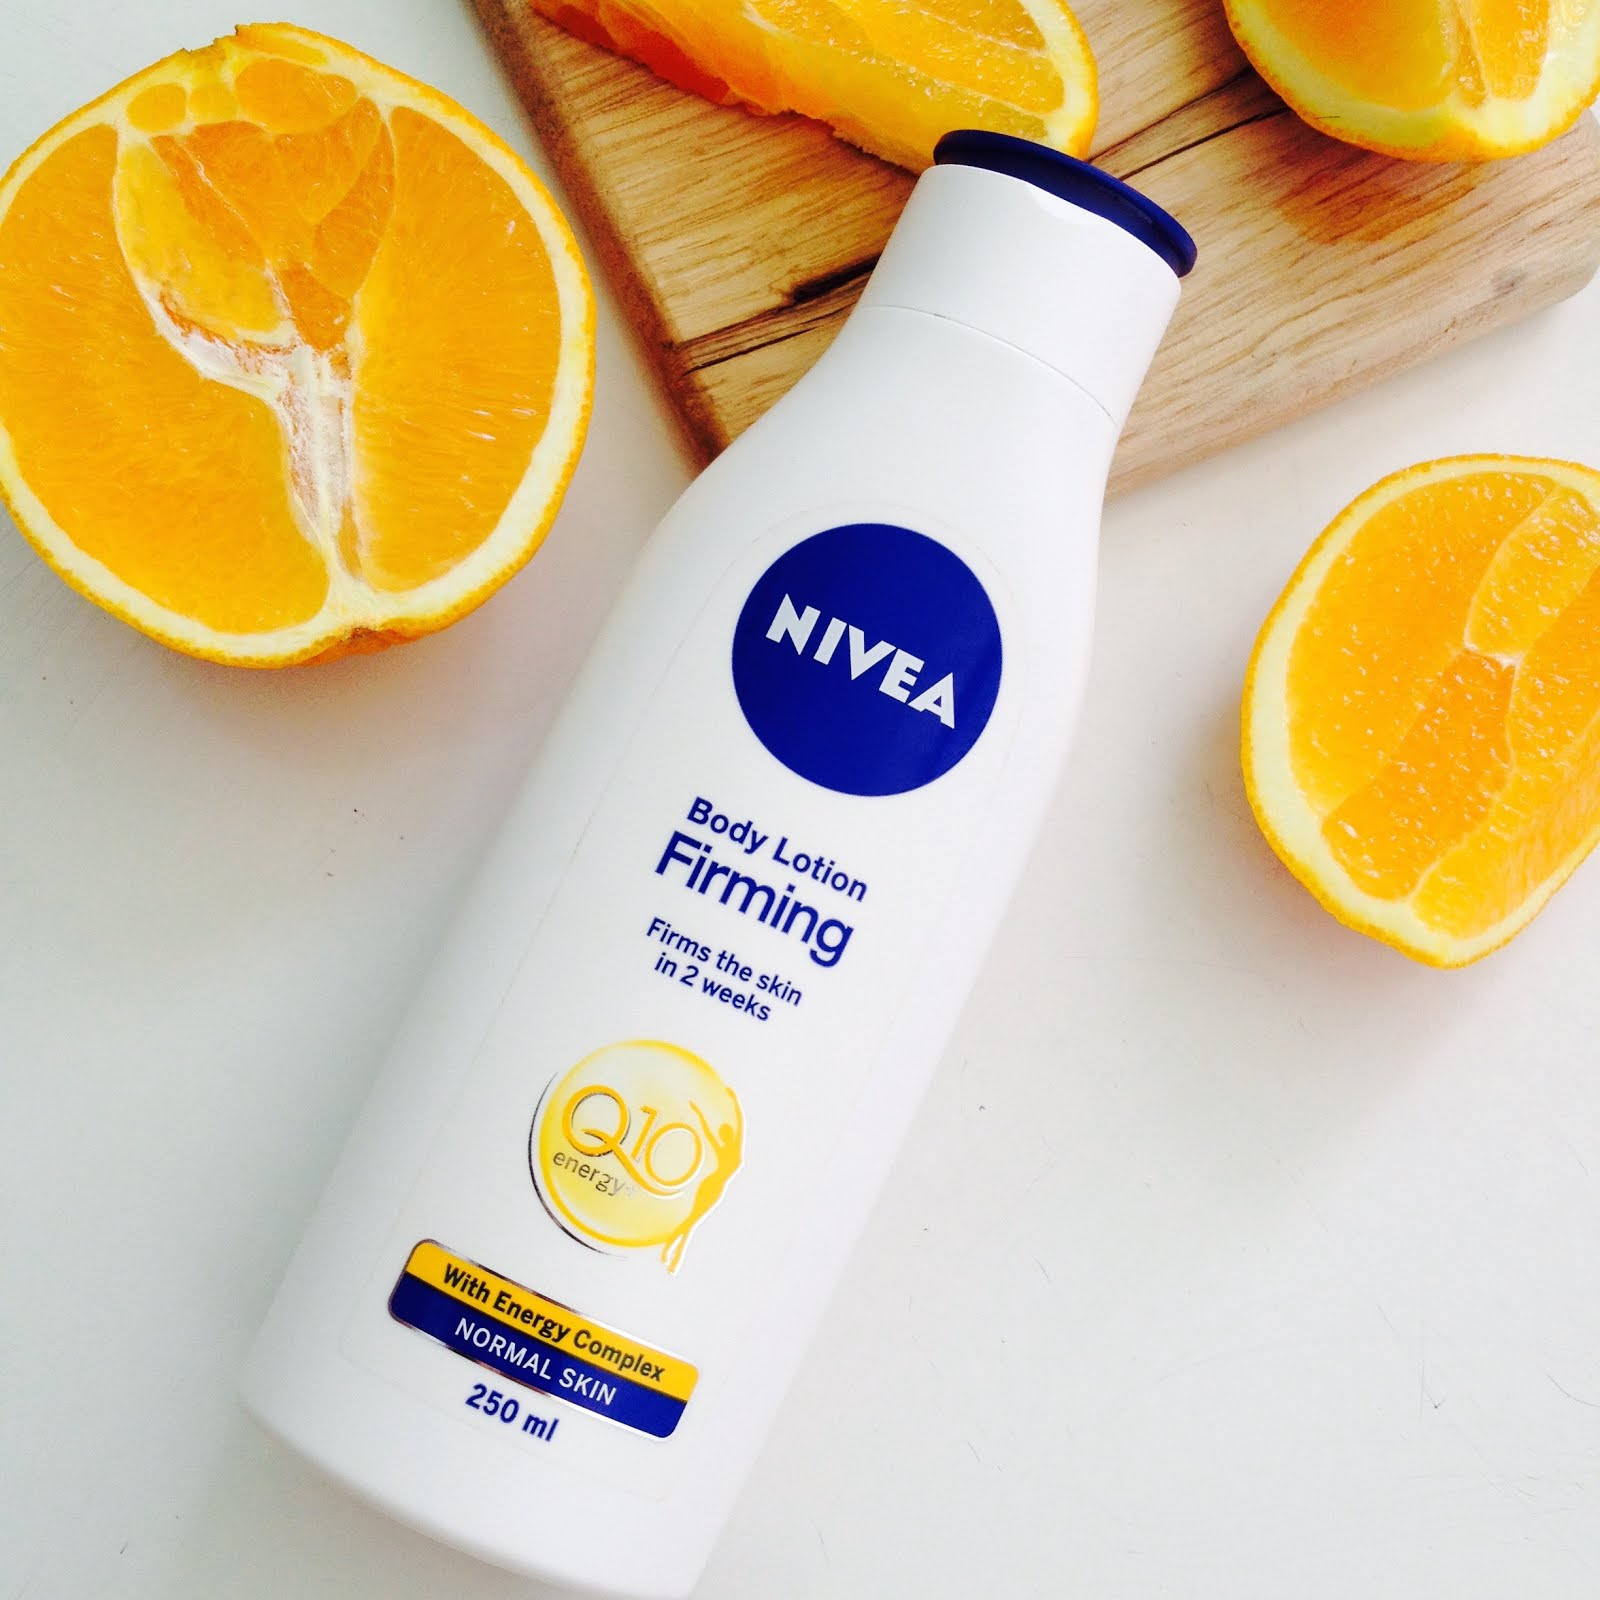 Nivea firming body lotion review